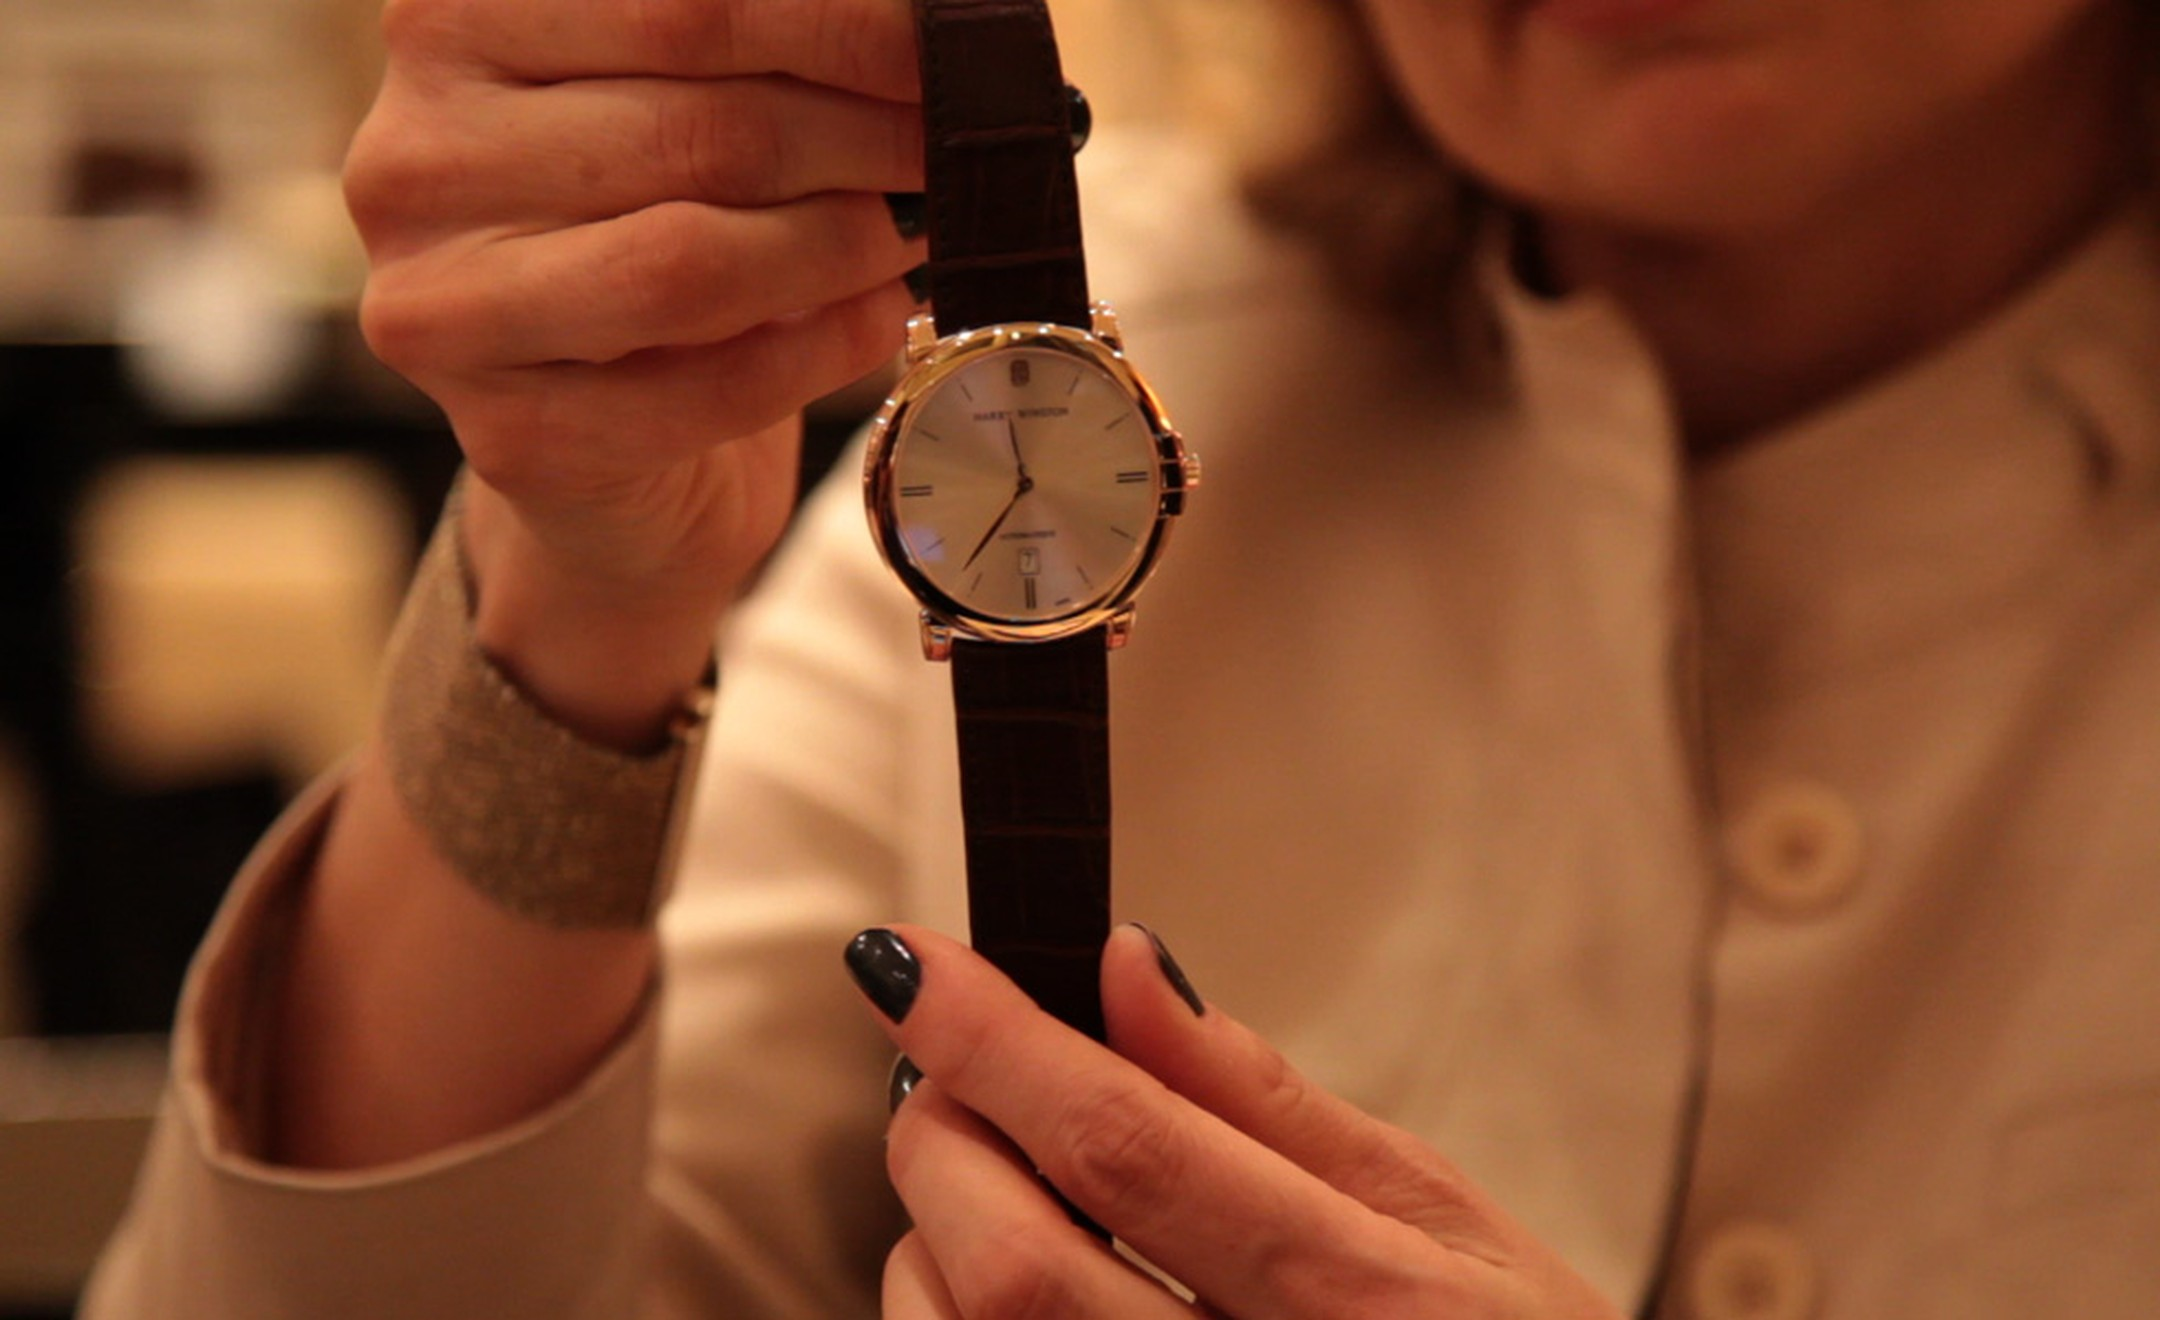 Video of Maria Doulton, The Jewellery Editor, at Harry Winston, BaselWorld 2011